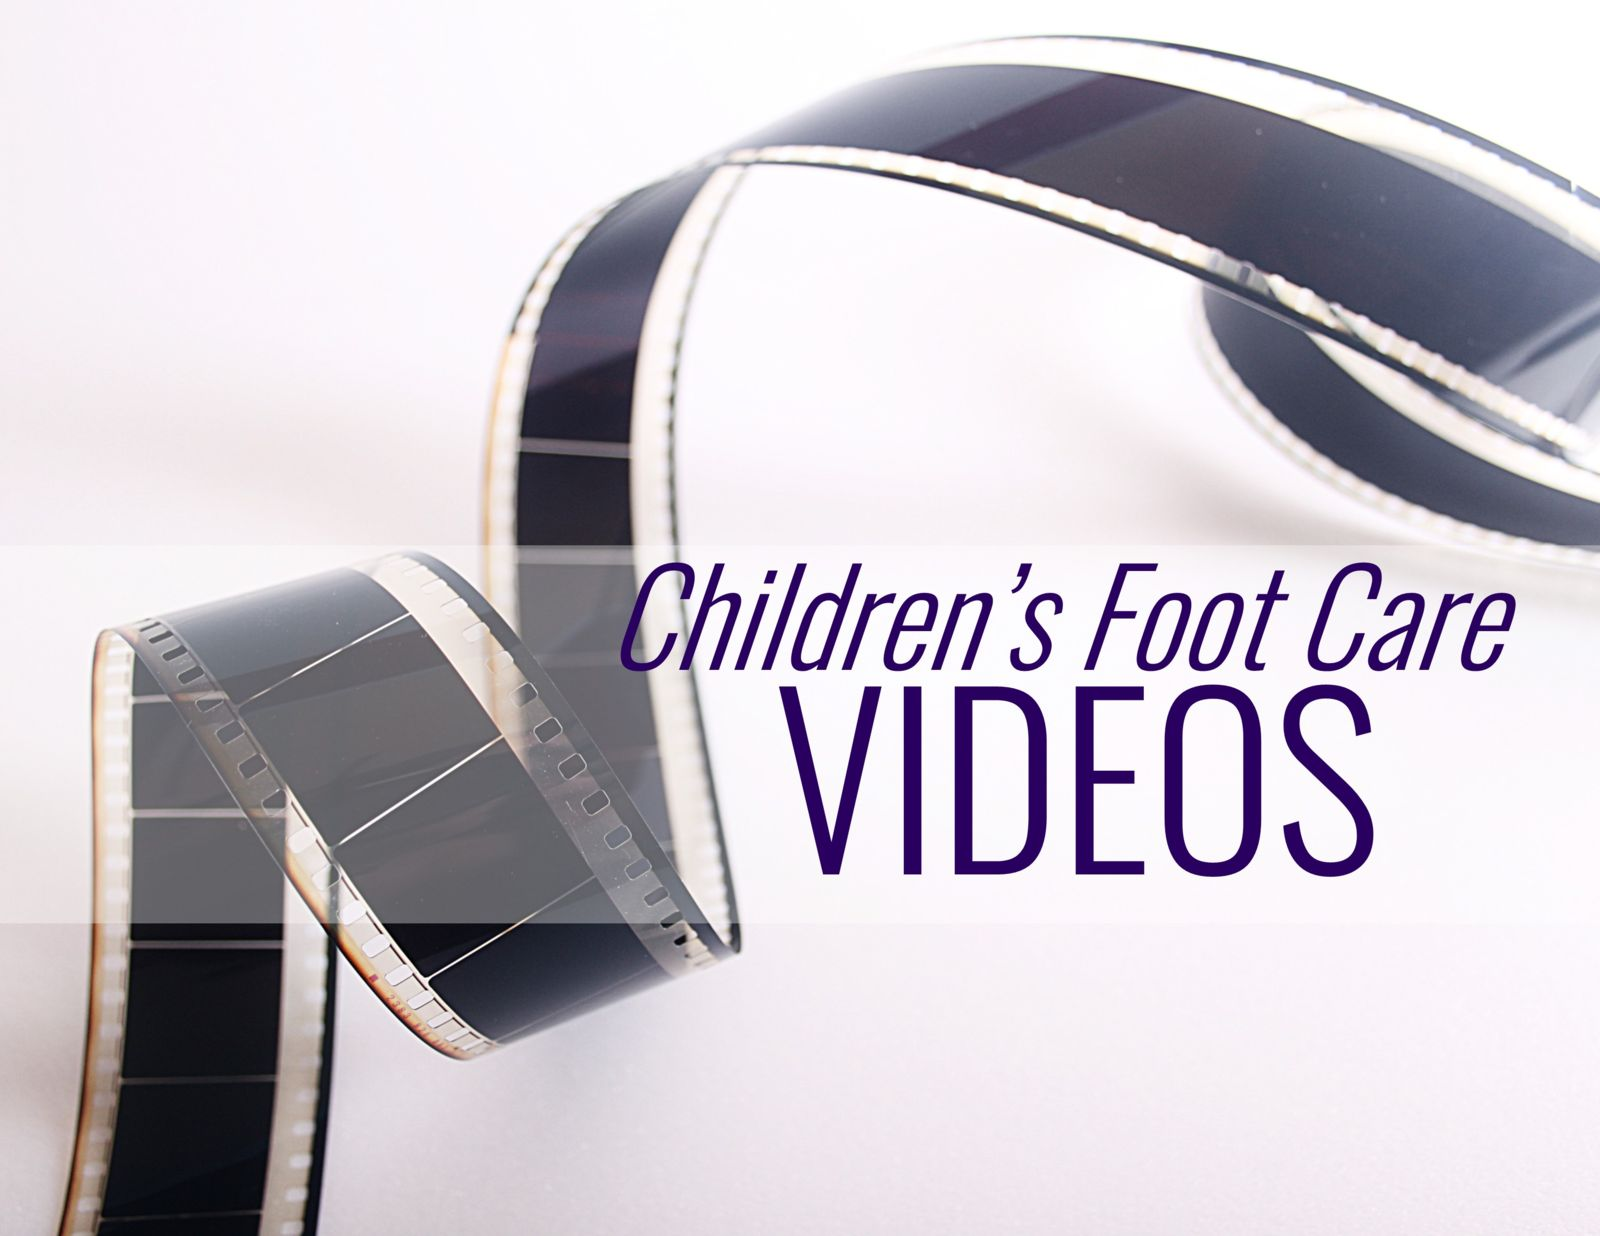 movie reel with words: Children's Foot Care Videos